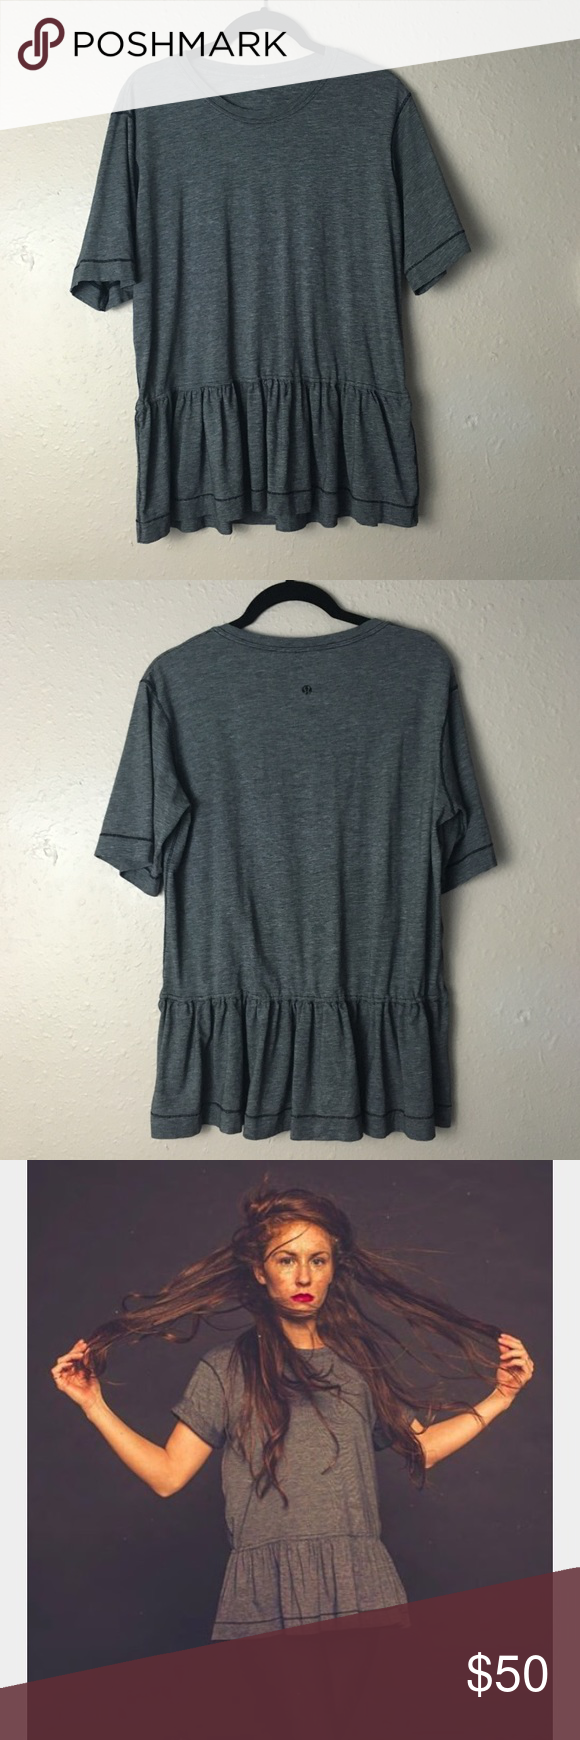 """Lululemon peplum top Lululemon """"flouncy tee"""" Cotton tshirt material. In EUC; worn once, no flaws. No size tag, measures 19"""" Pit to pit with additional stretch. Fits small to medium. Bundle for discounts lululemon athletica Tops Tees - Short Sleeve"""